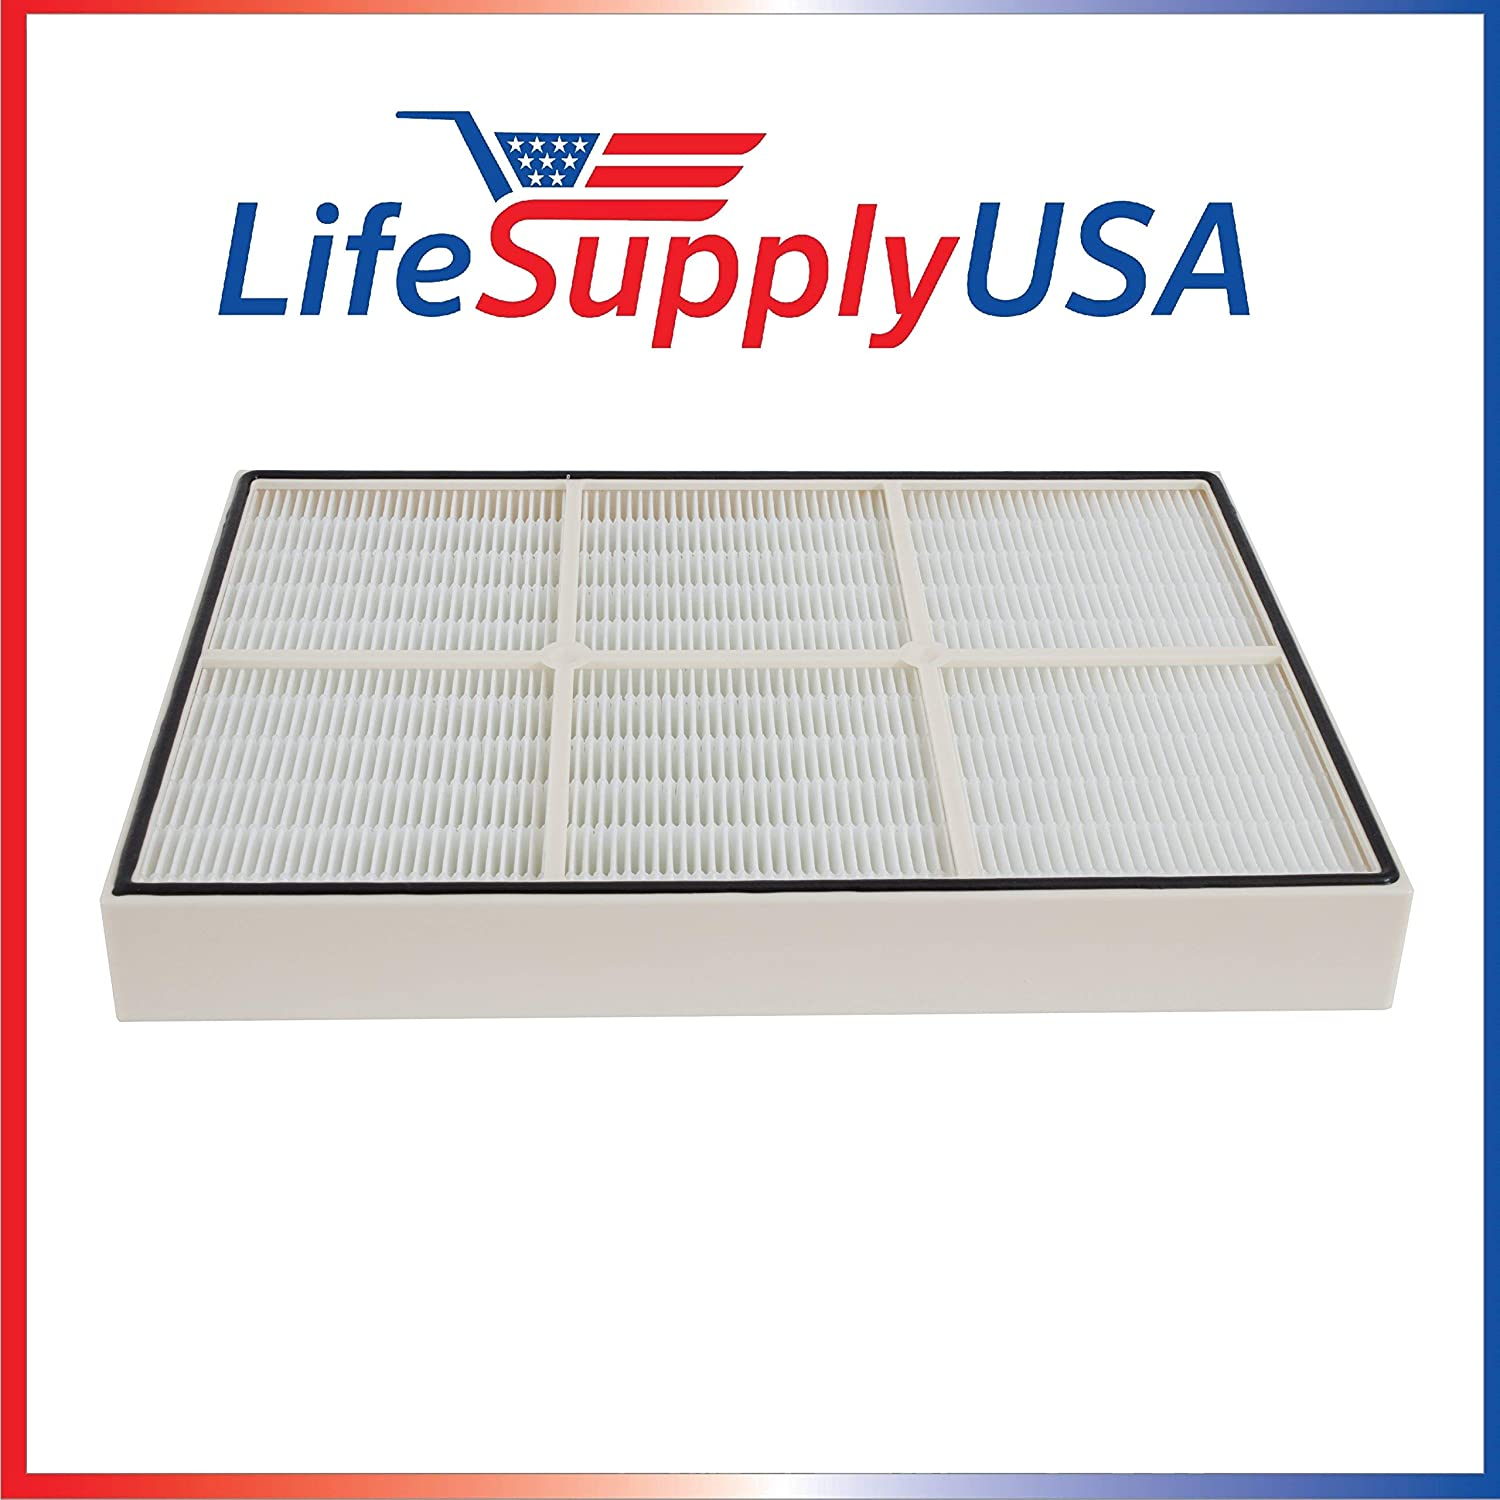 LifeSupplyUSA Filter Compatible with Whirlpool 1183054K (1183054) Plastic Frame Whispure Air Purifier Models AP350 AP450 AP510 AP45030HO 1183054 1183054K